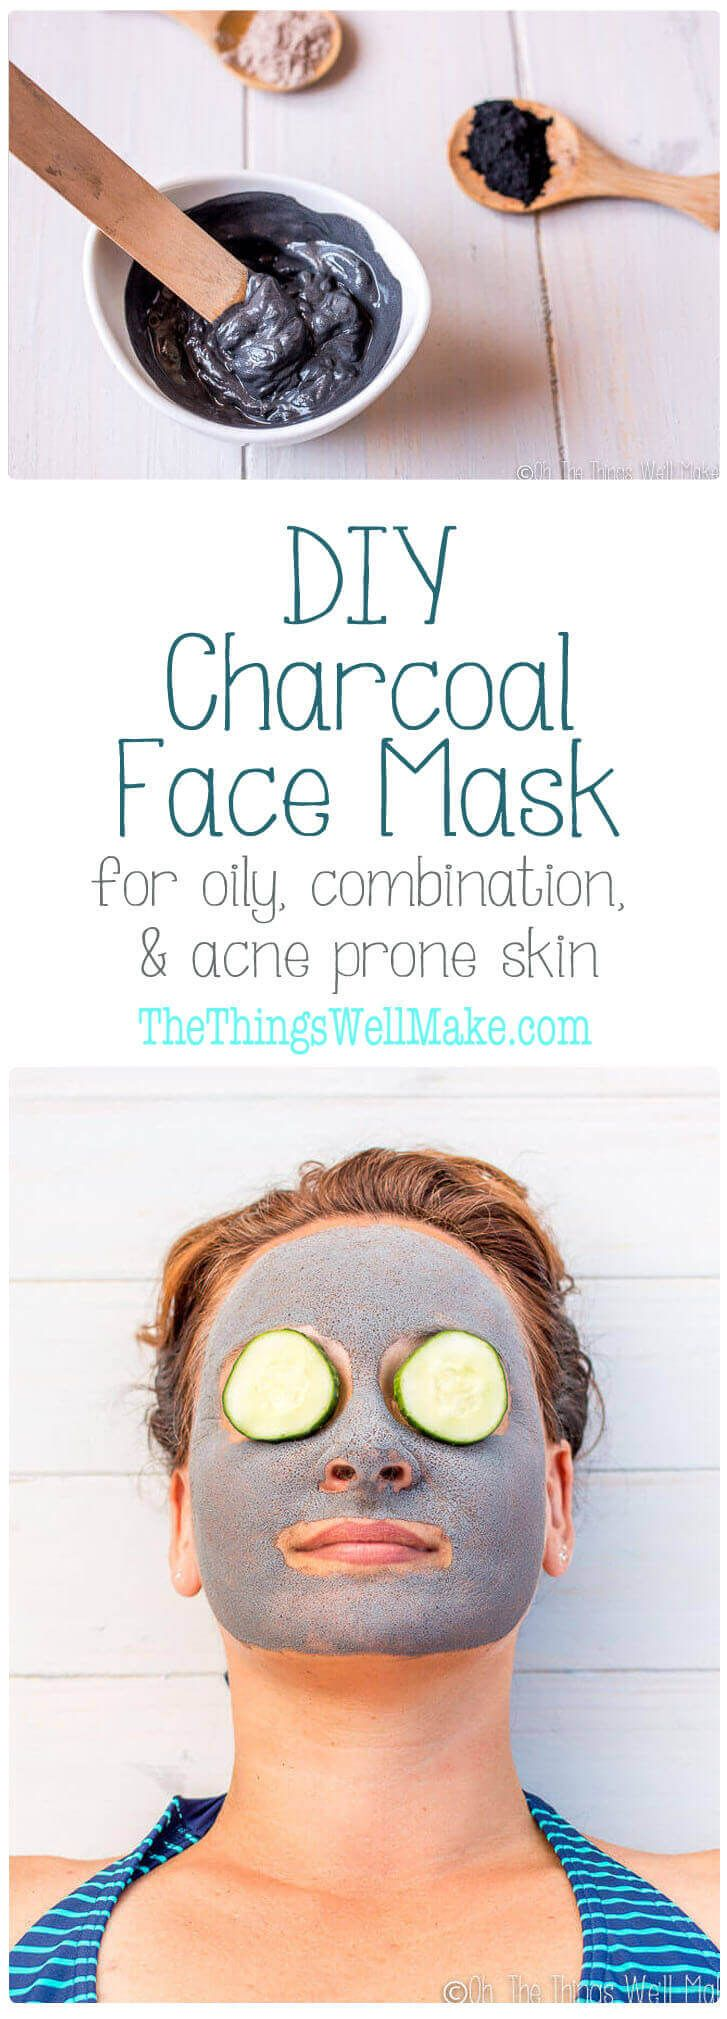 Clear up your skin with this easy, DIY charcoal face mask which is great for oily, combination, and acne prone skin.